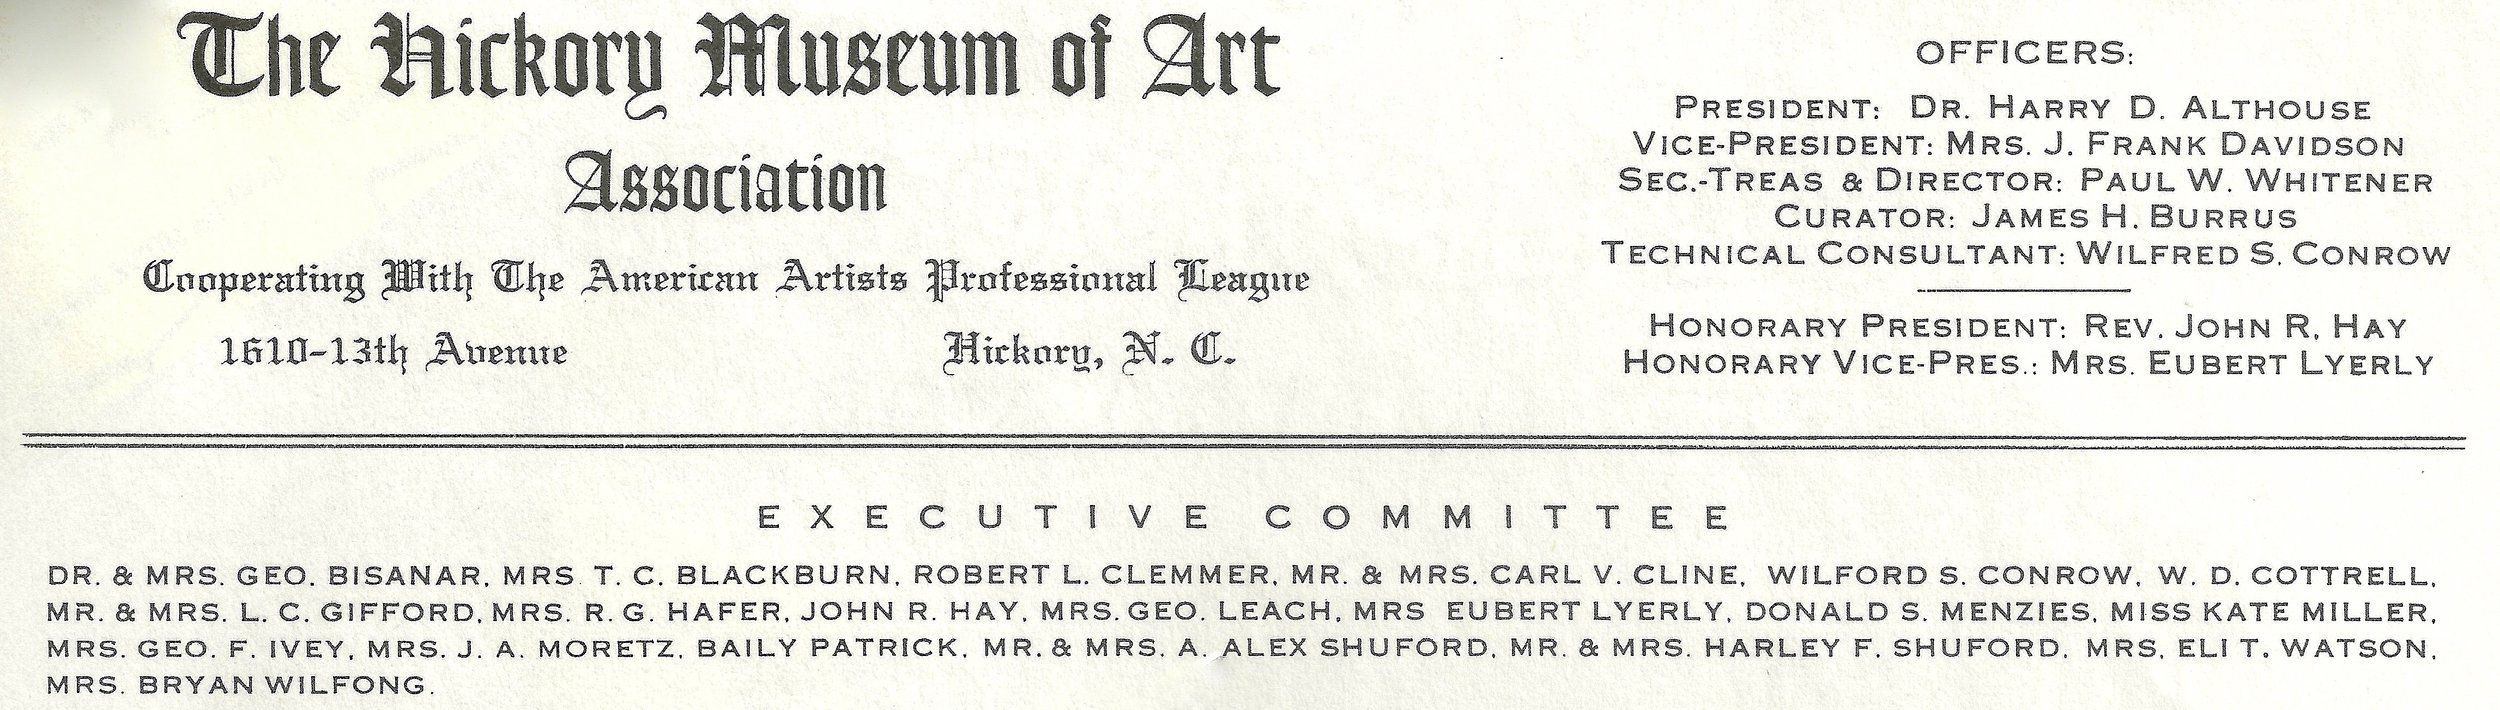 "On this 1951 HMA letterhead, Wilfford Conrow appears both as a ""technical Consultant"" and as part of the Executive Committee. His continuing deep involvement with HMA was obvious, even if his name is misspelled once on that letterhead."